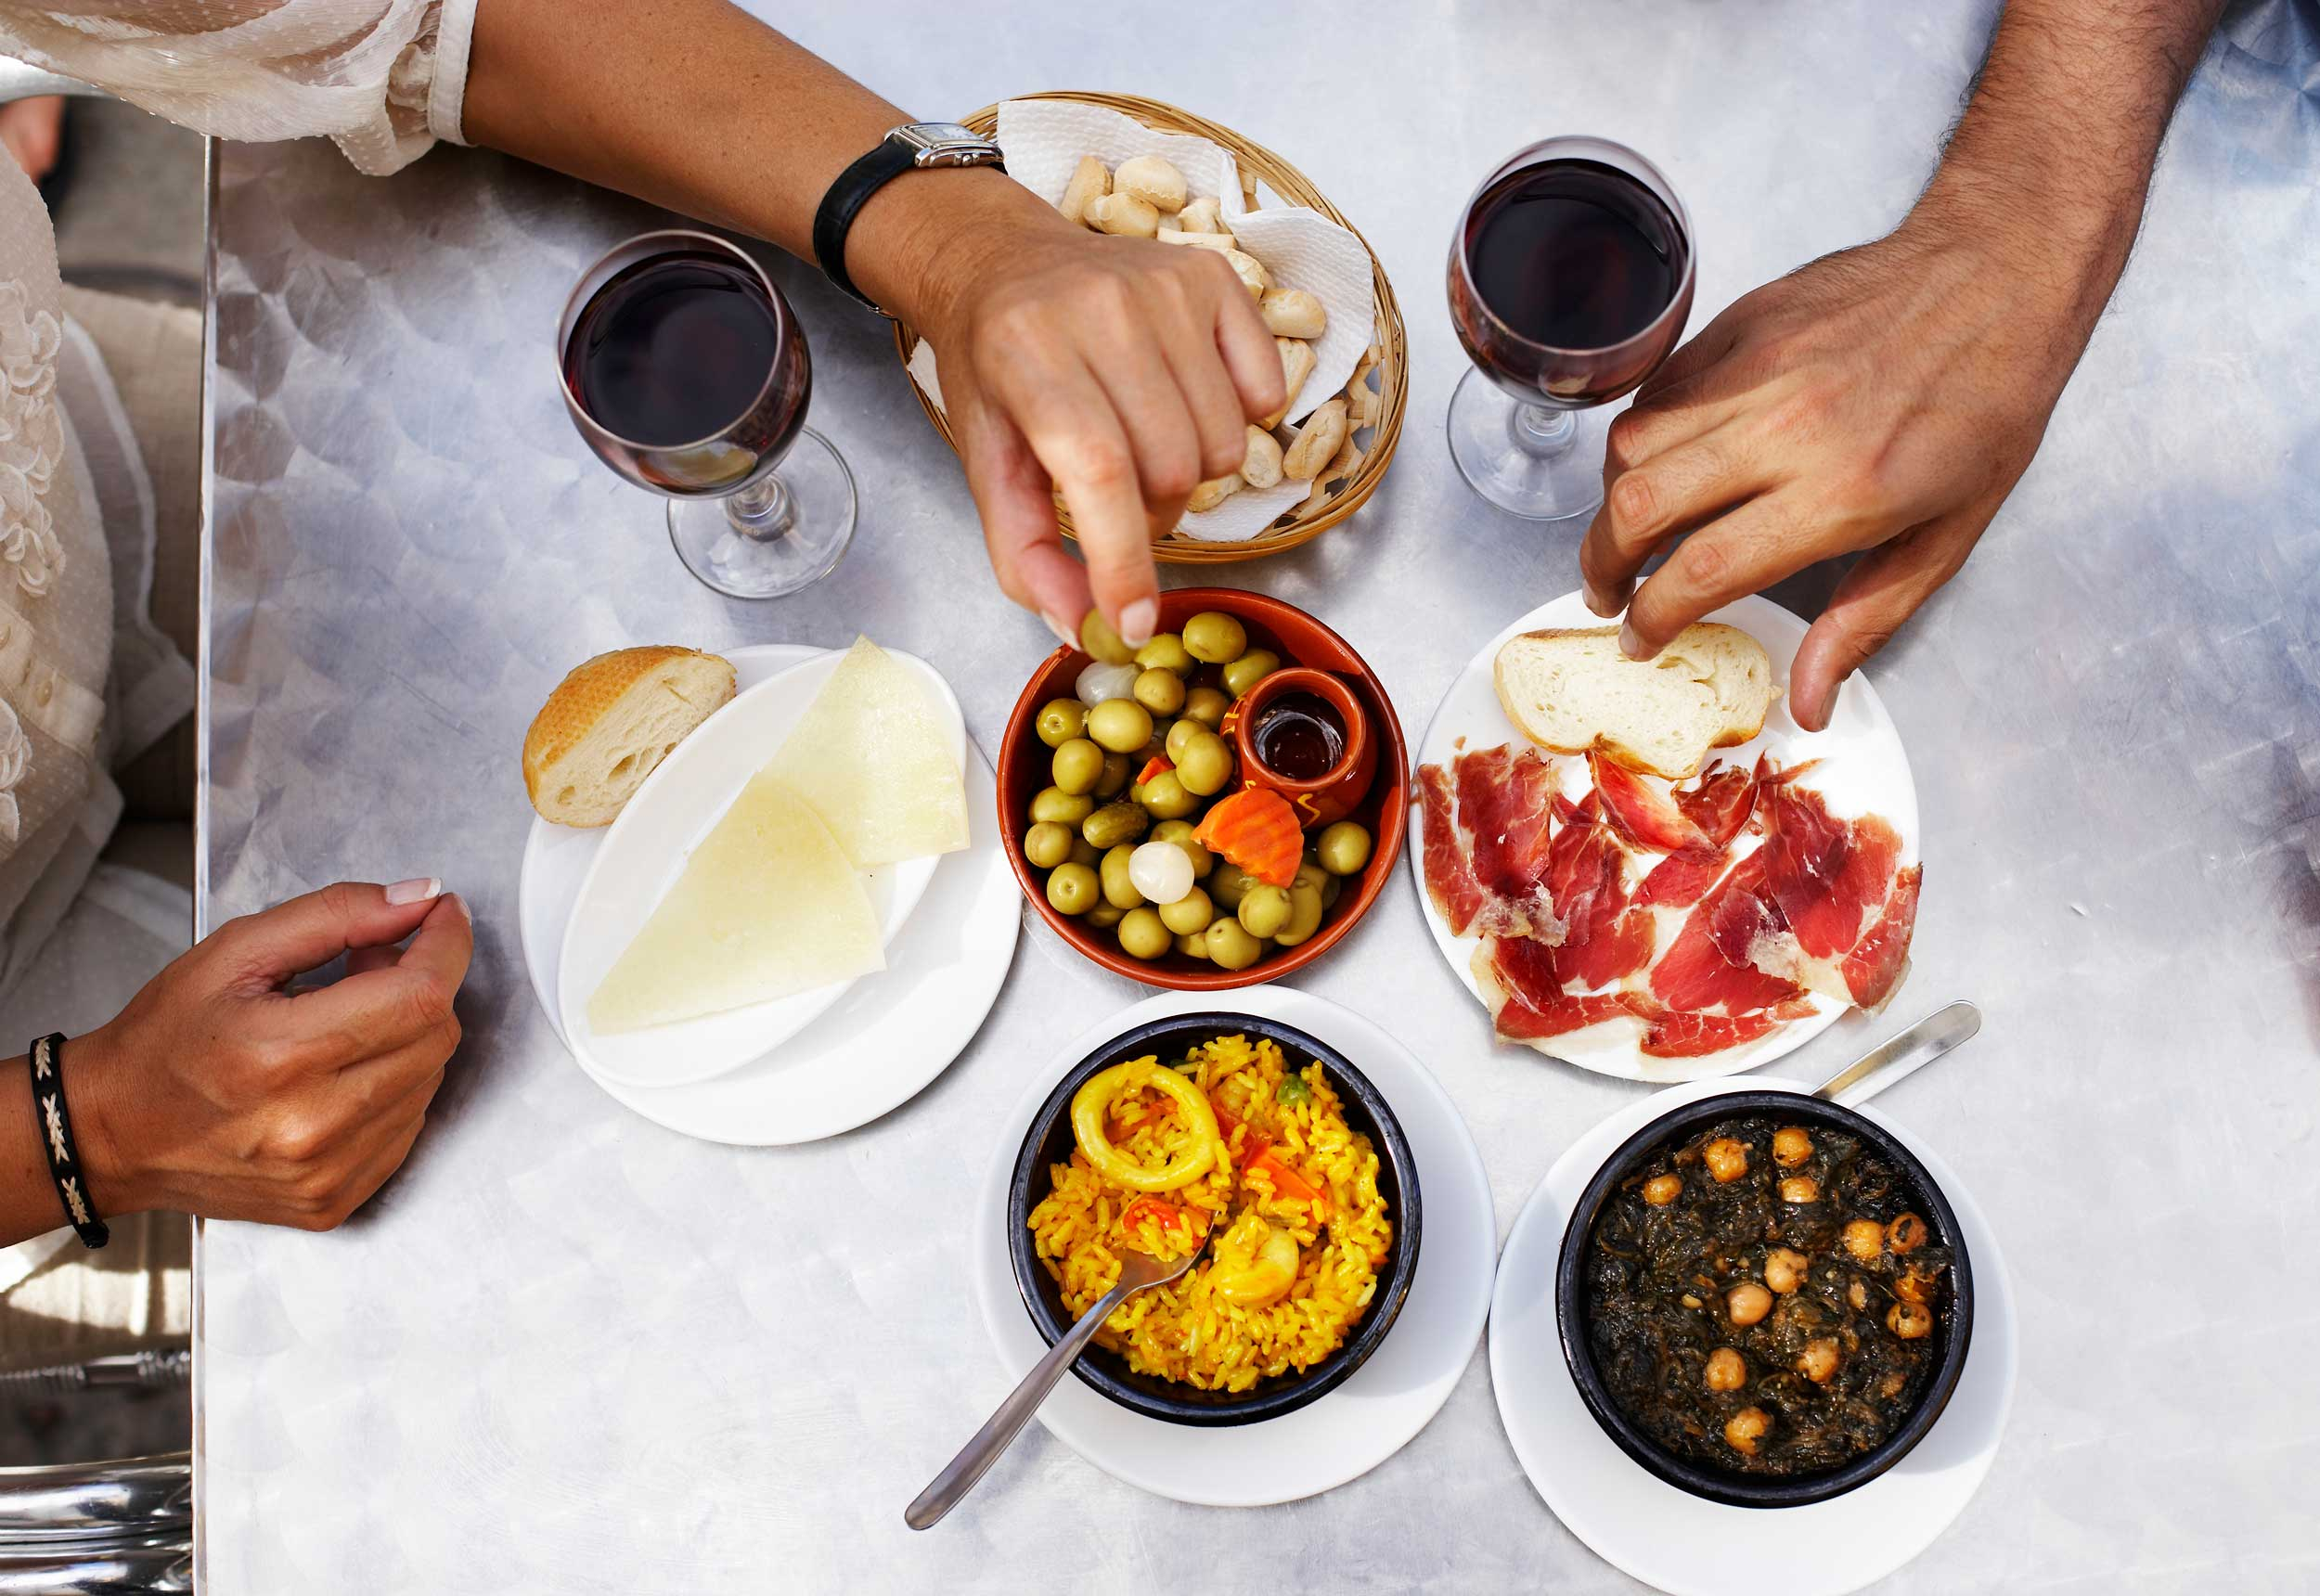 Friends gathered around a table filled with glasses of red wine and fine eats.